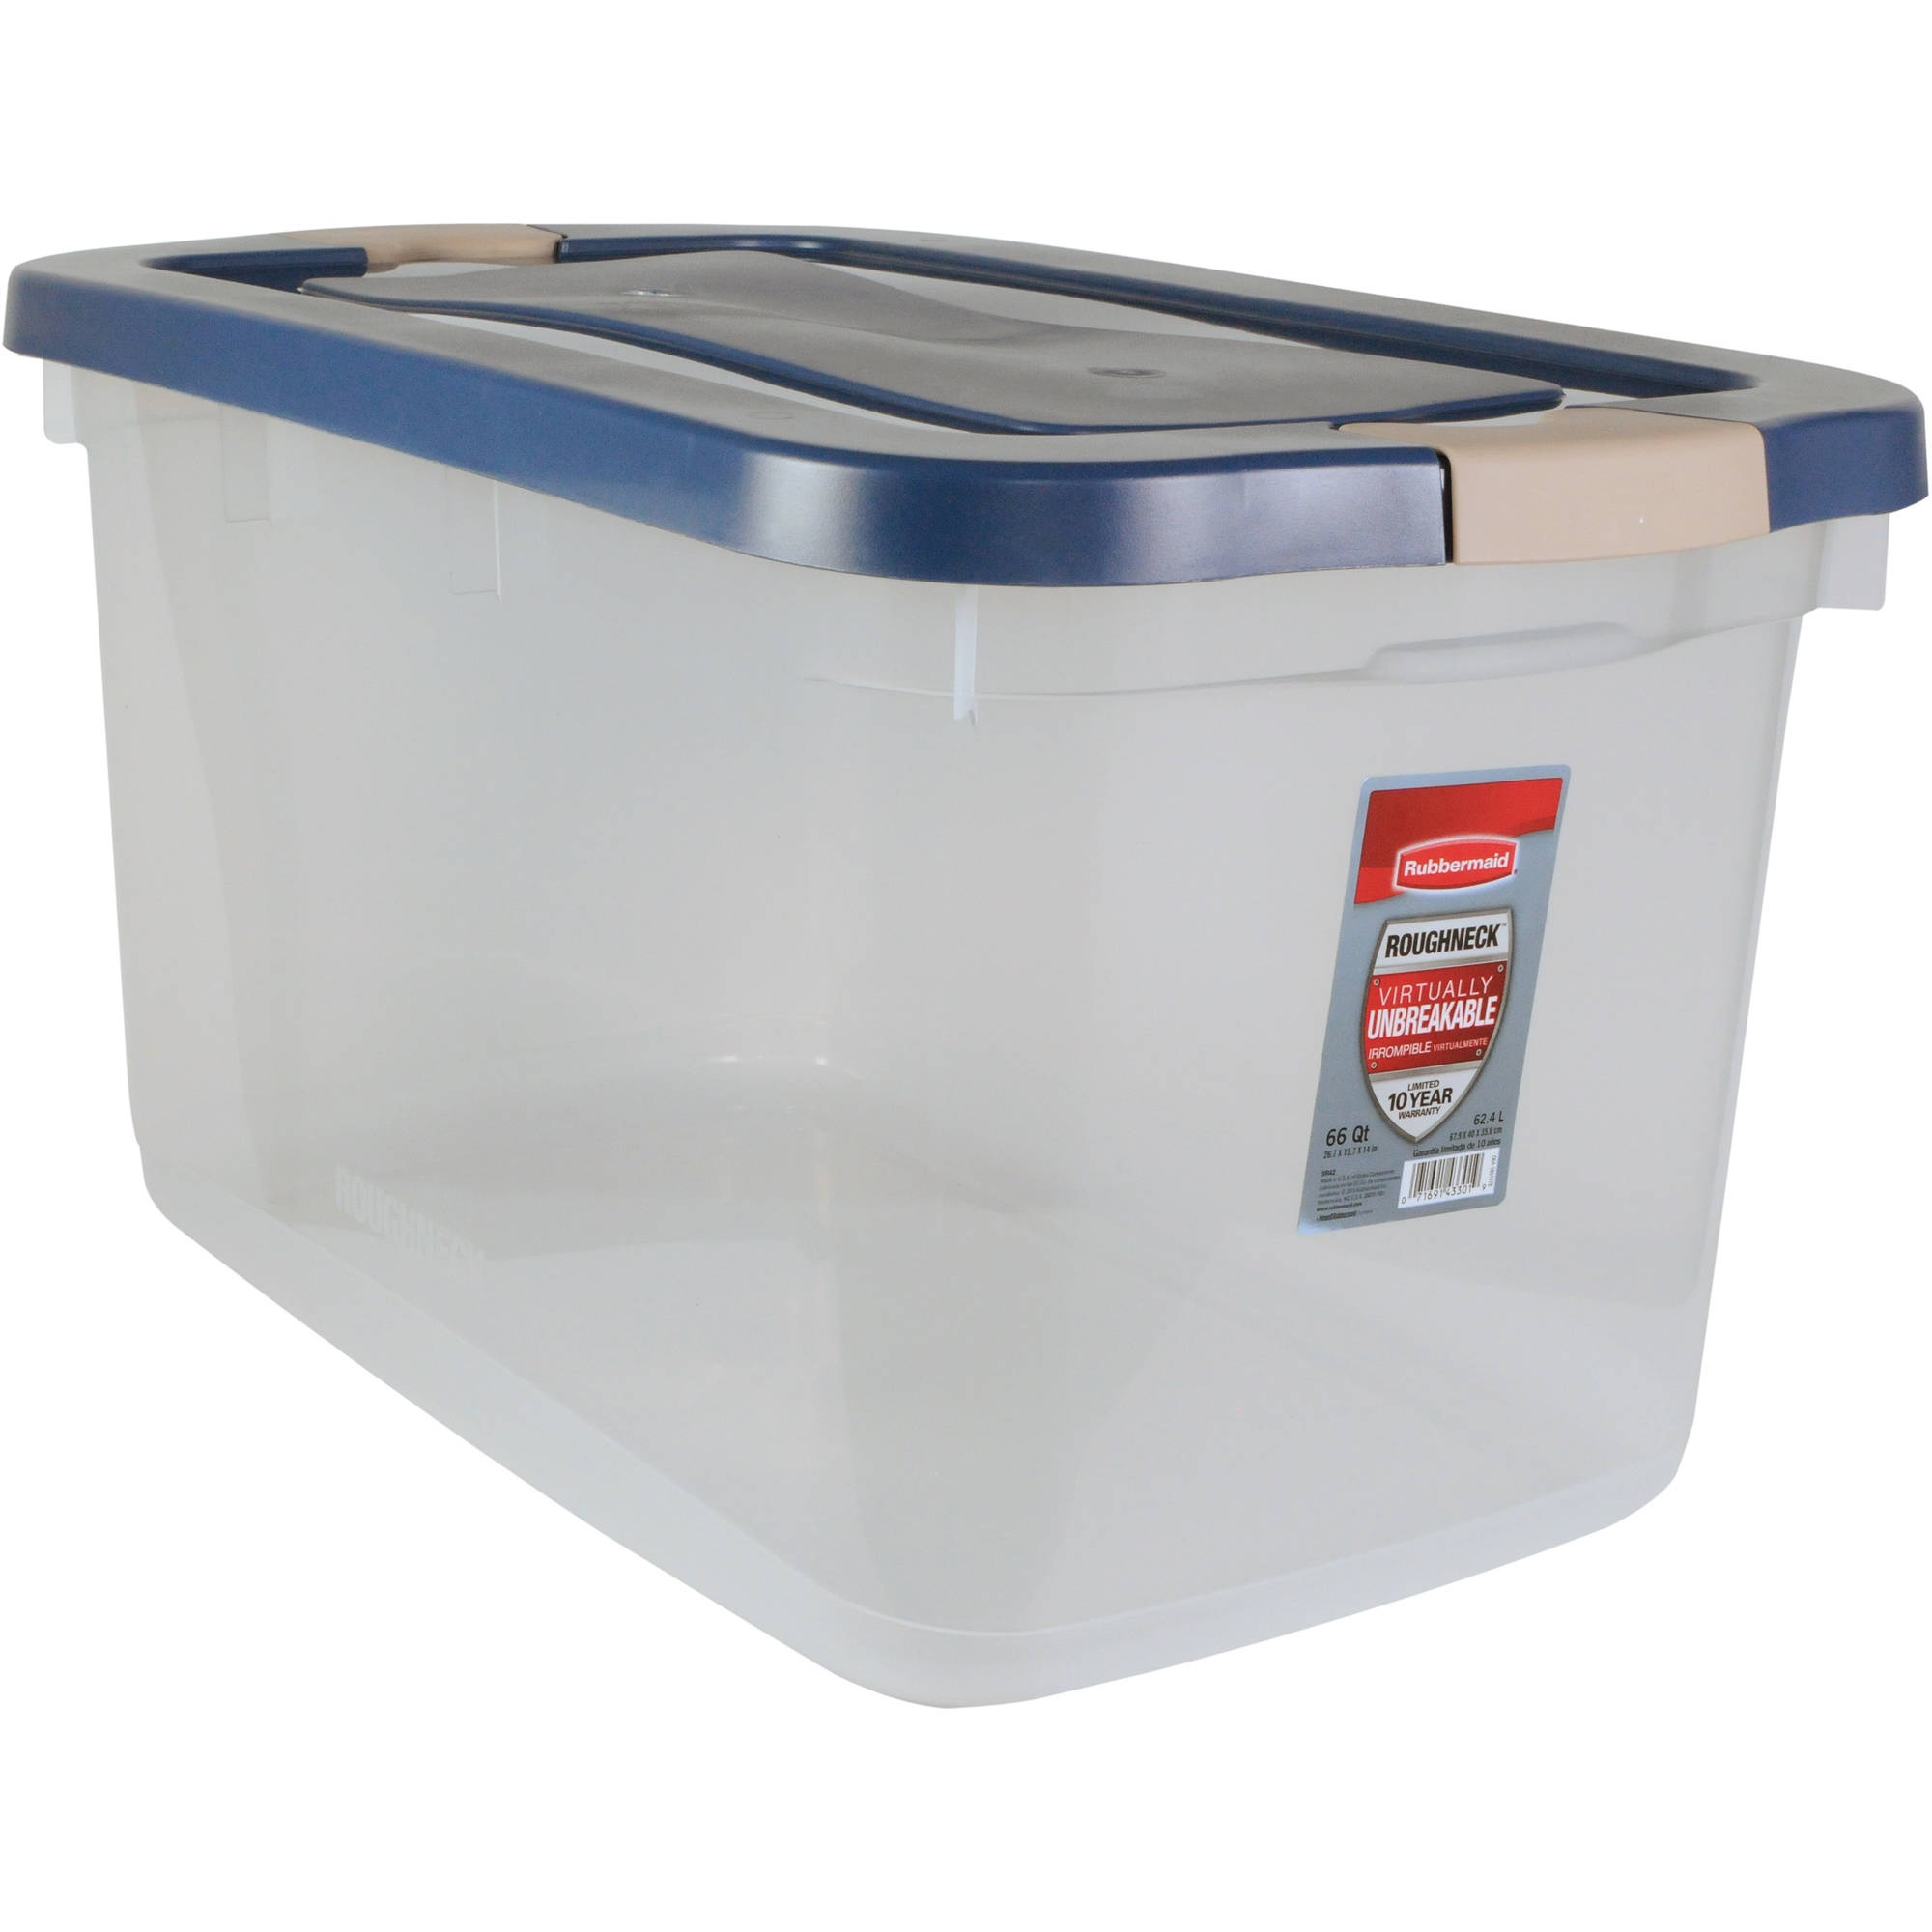 Rubbermaid Roughneck 66 Qt. (16.5 Gal) Clear Storage Tote Bin, Clear with Blue Lid